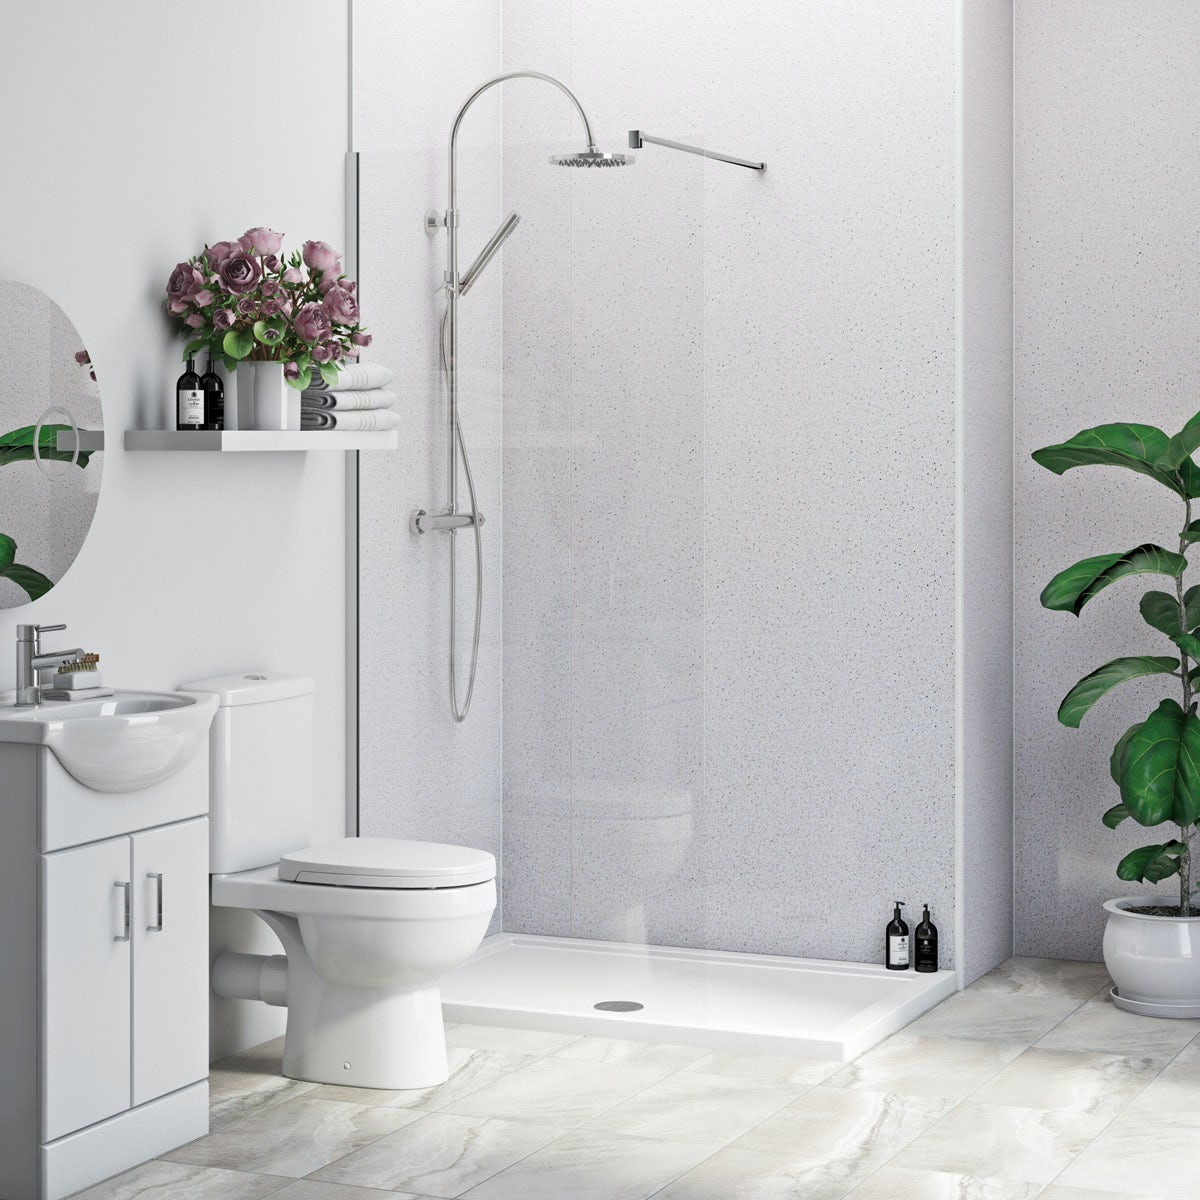 Multipanel Economy Sunlit Quartz shower wall single panel